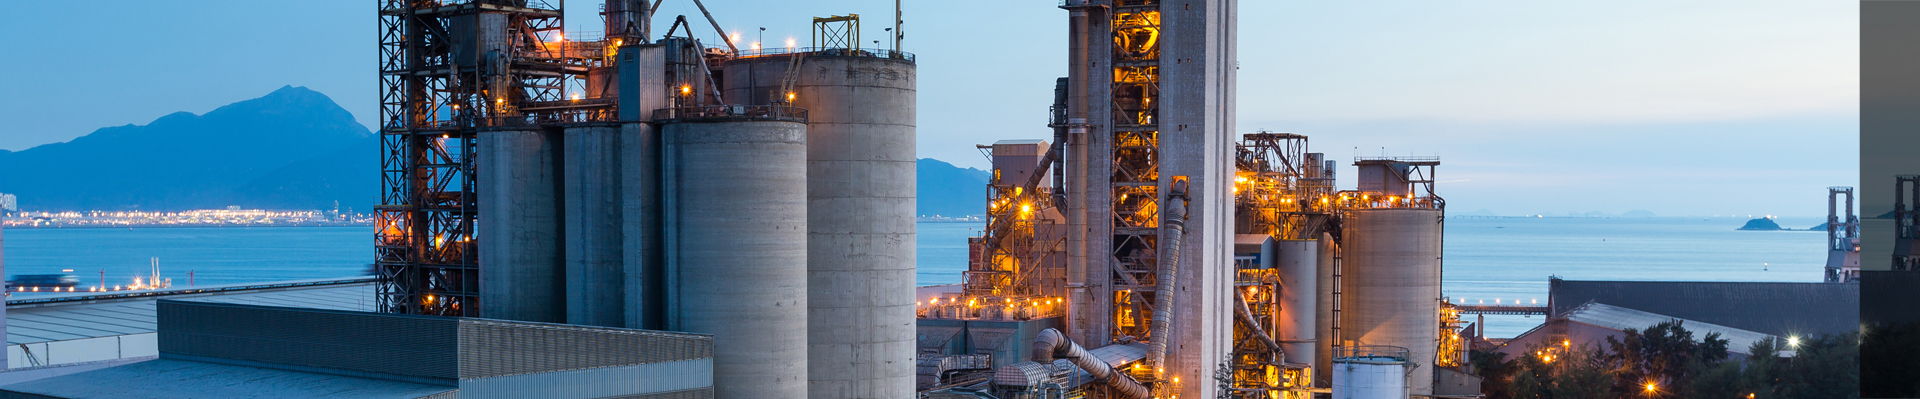 Maintenance for Heavy Industry Sector UK